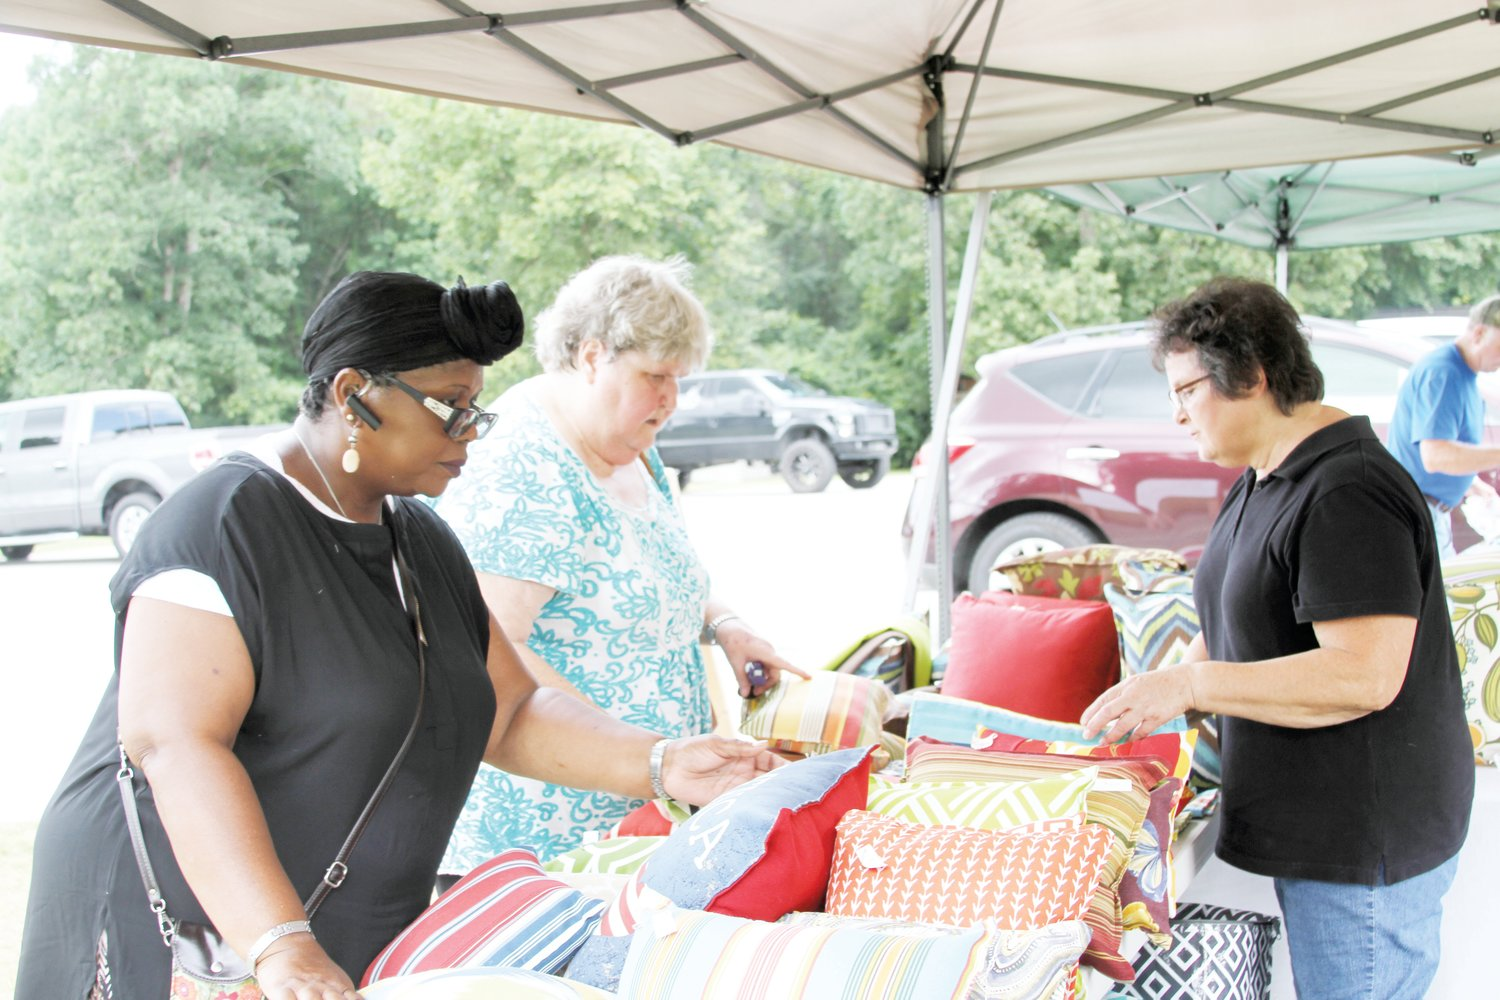 Shoppers look through assorted pillows during the Maxwell Road Endless Yard Sale in 2017. The event, now in its fifth year, will be held Saturday in Sampson and Cumberland counties.